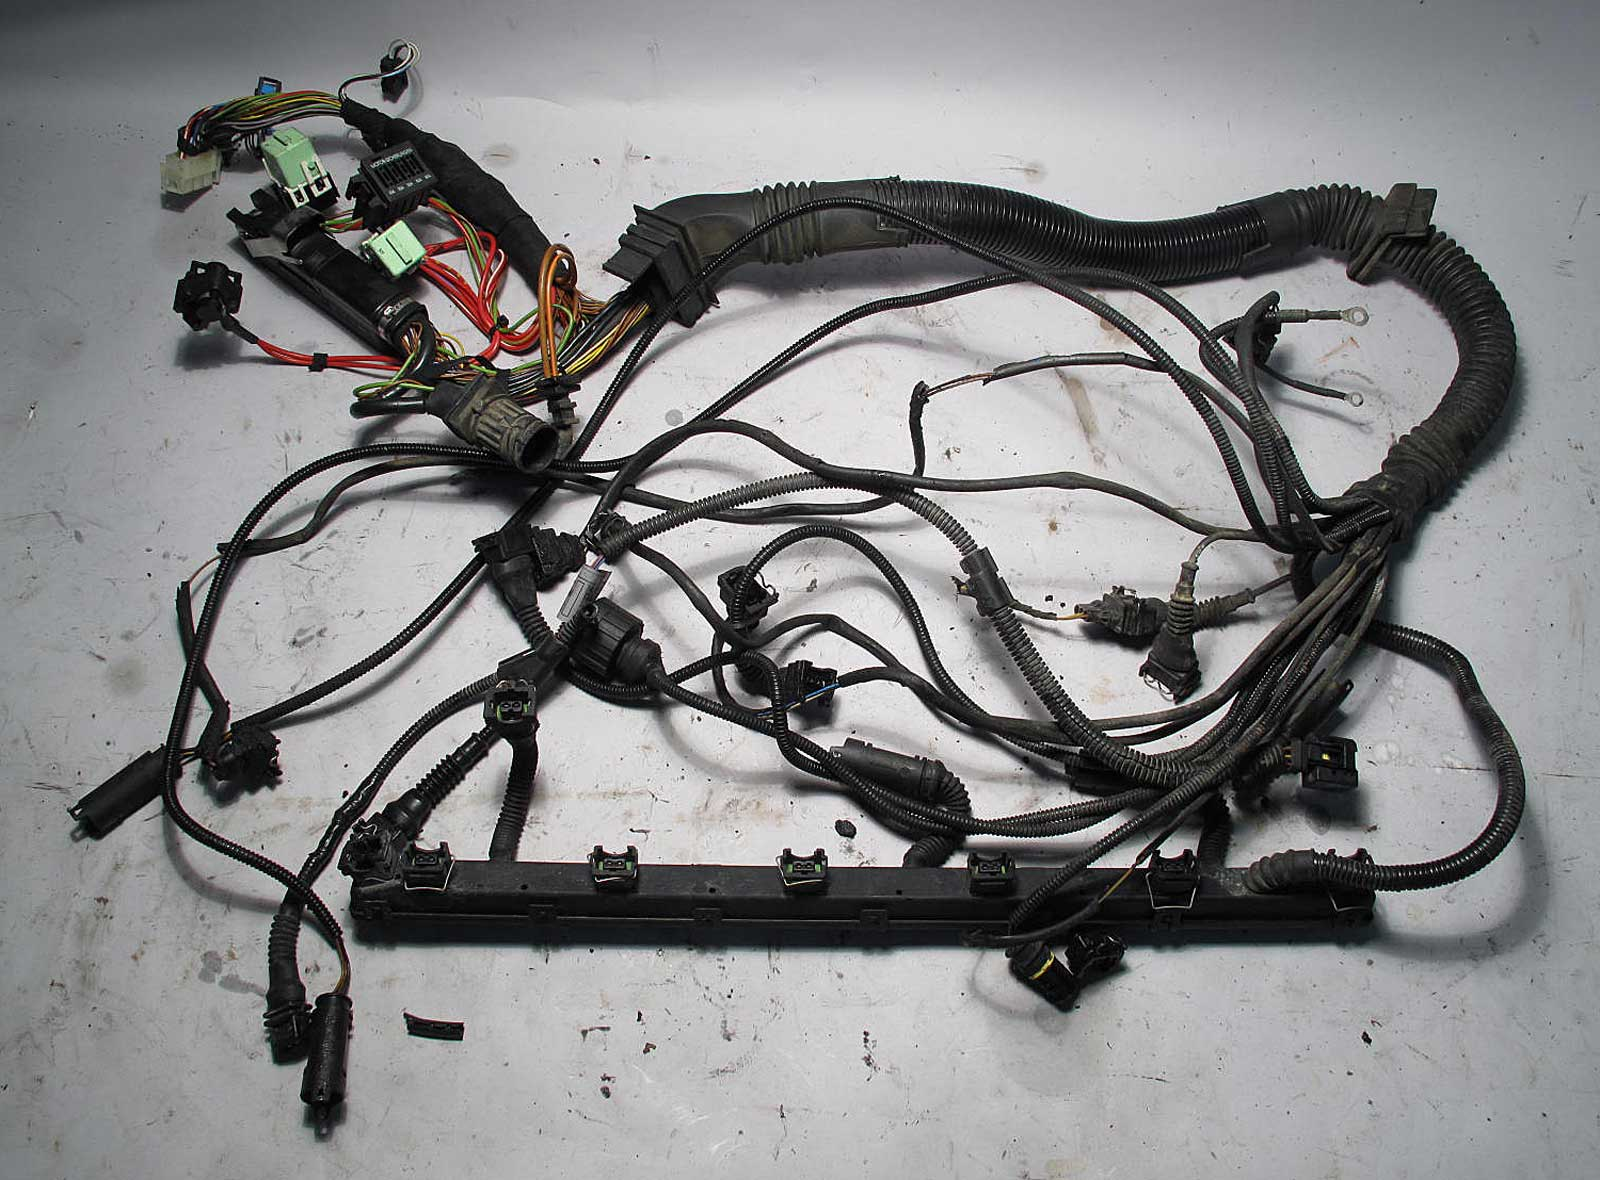 inv_004585 bmw e39 1998 528i 5 spd manual engine wiring harness complete m52 BMW E36 M3 for Sale at honlapkeszites.co